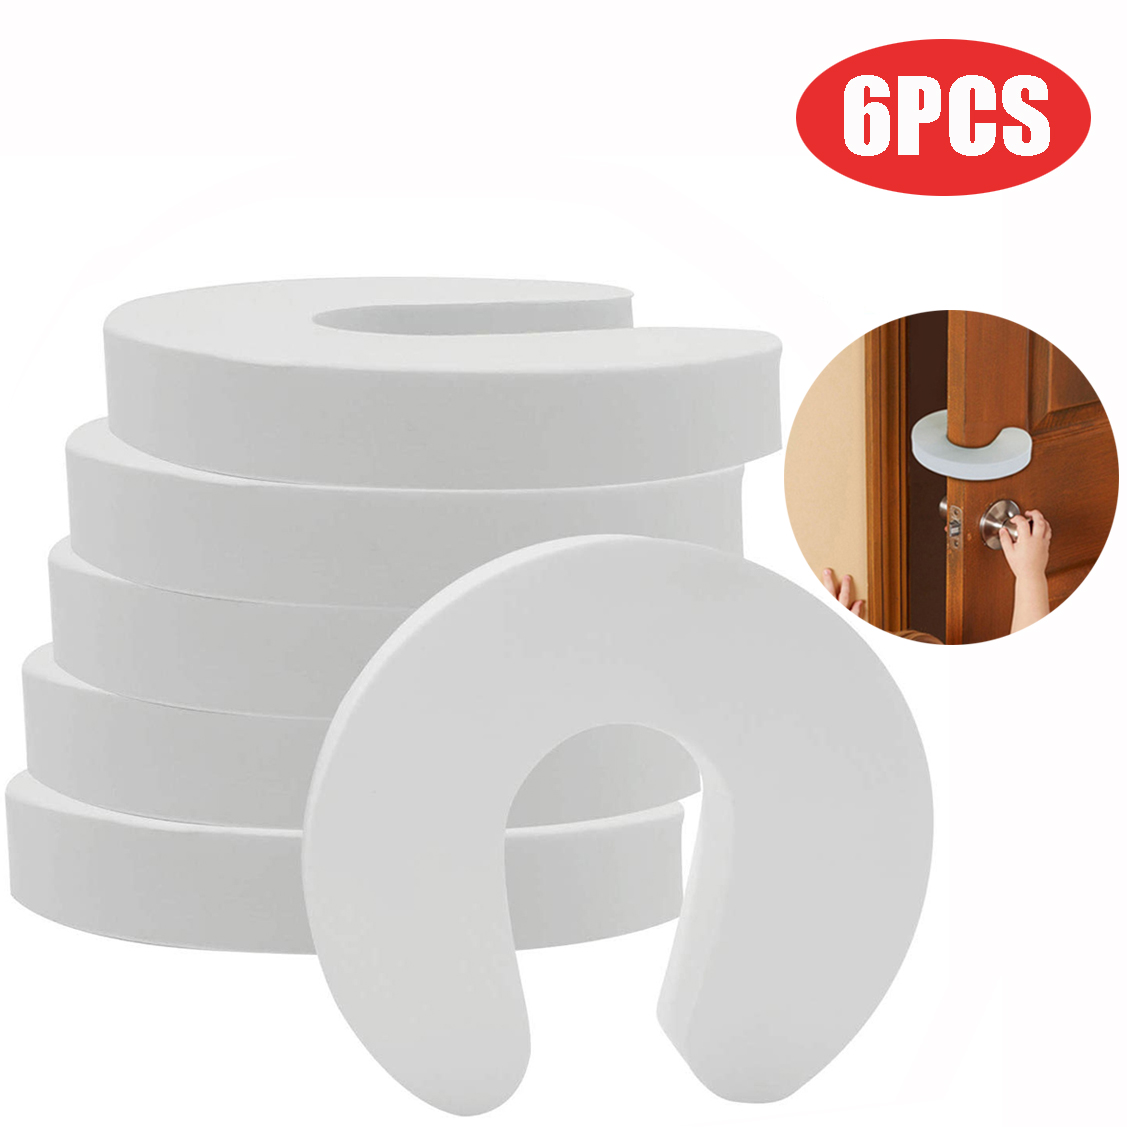 6PCS Doorways Gates Decorative Door Baby Care Soft Reusable C Shaped Door Safety Finger Guards For Cabinet Drawer Door